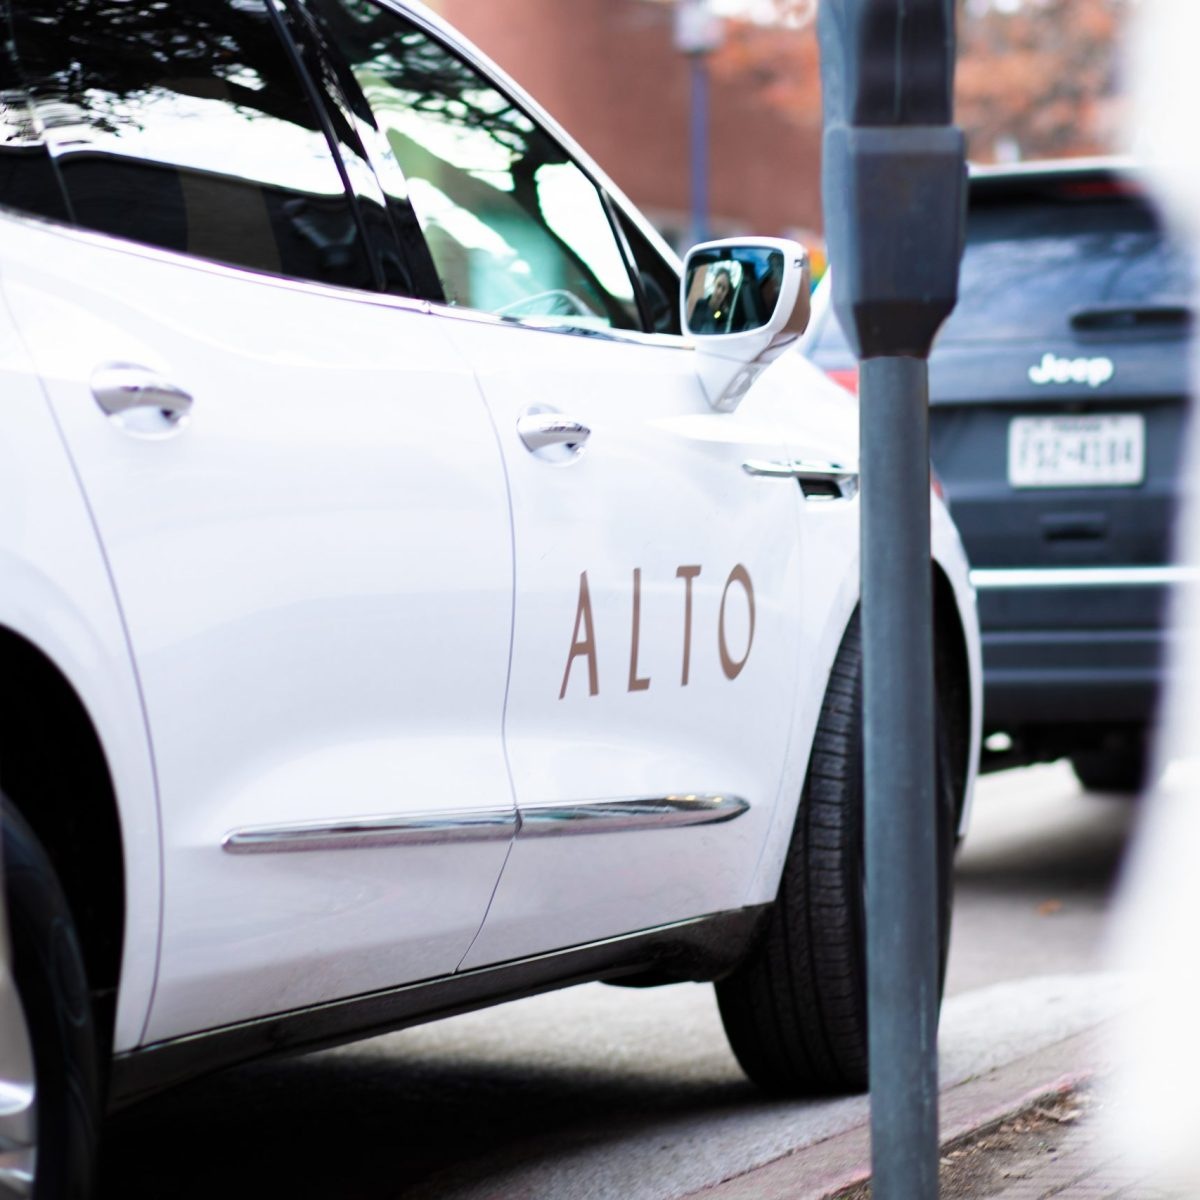 """first introduced as an """"upscale"""" alternative to lyft and uber, alto plans to exclusively utilize electric vehicles by 2023   image courtesy of alto"""